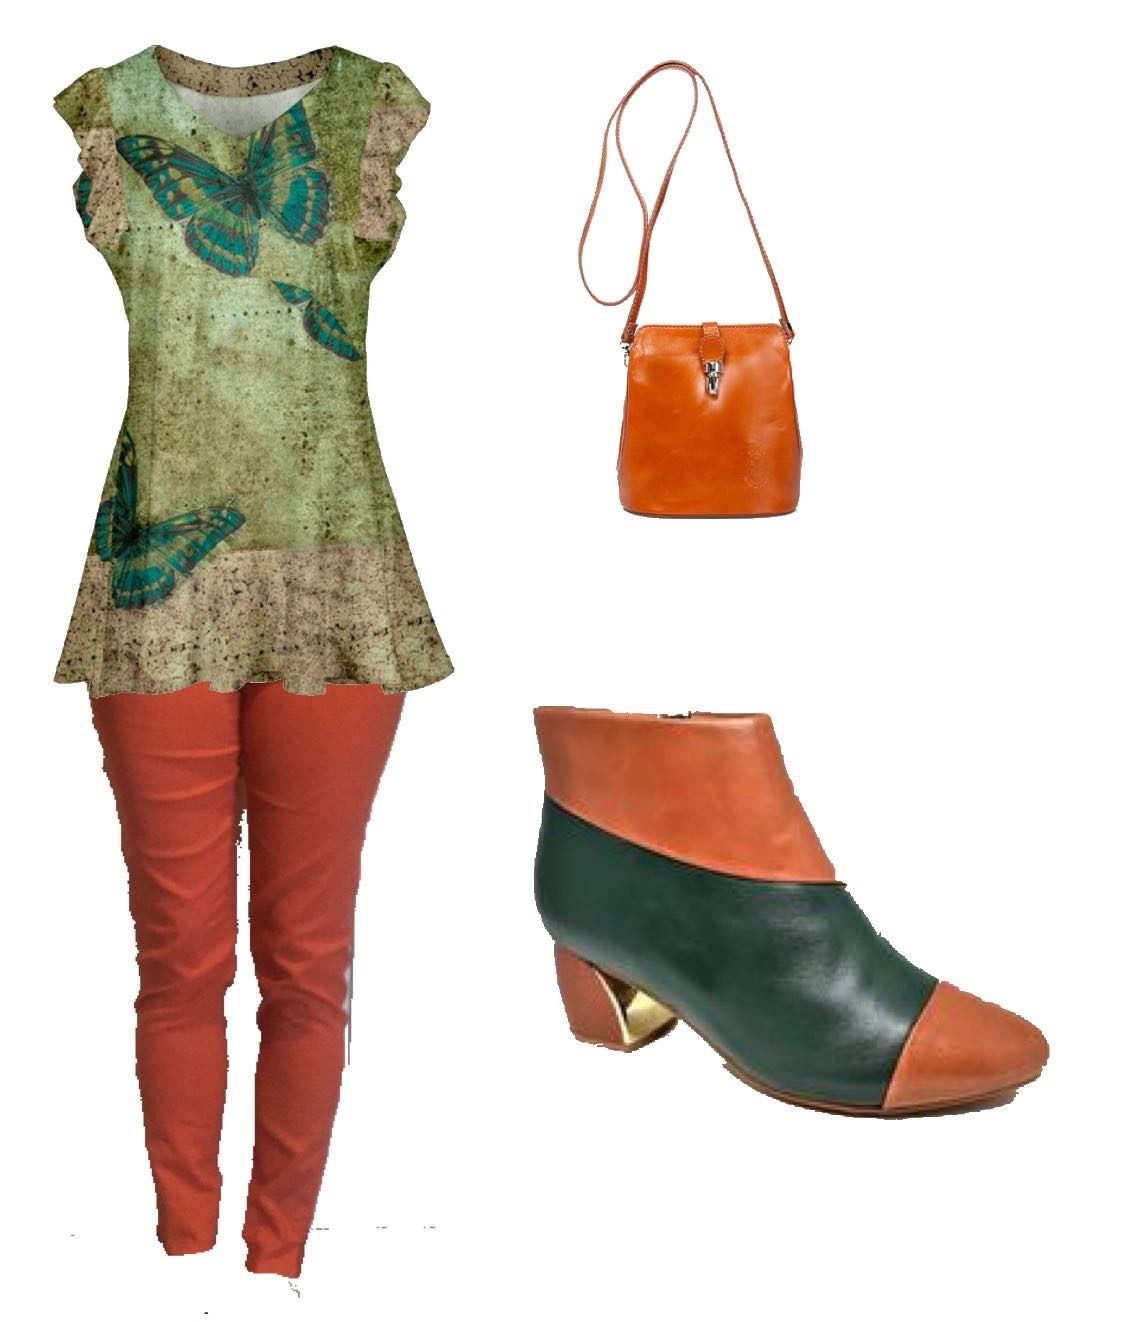 Linking Piece - Shoes - Orange and Green.jpg